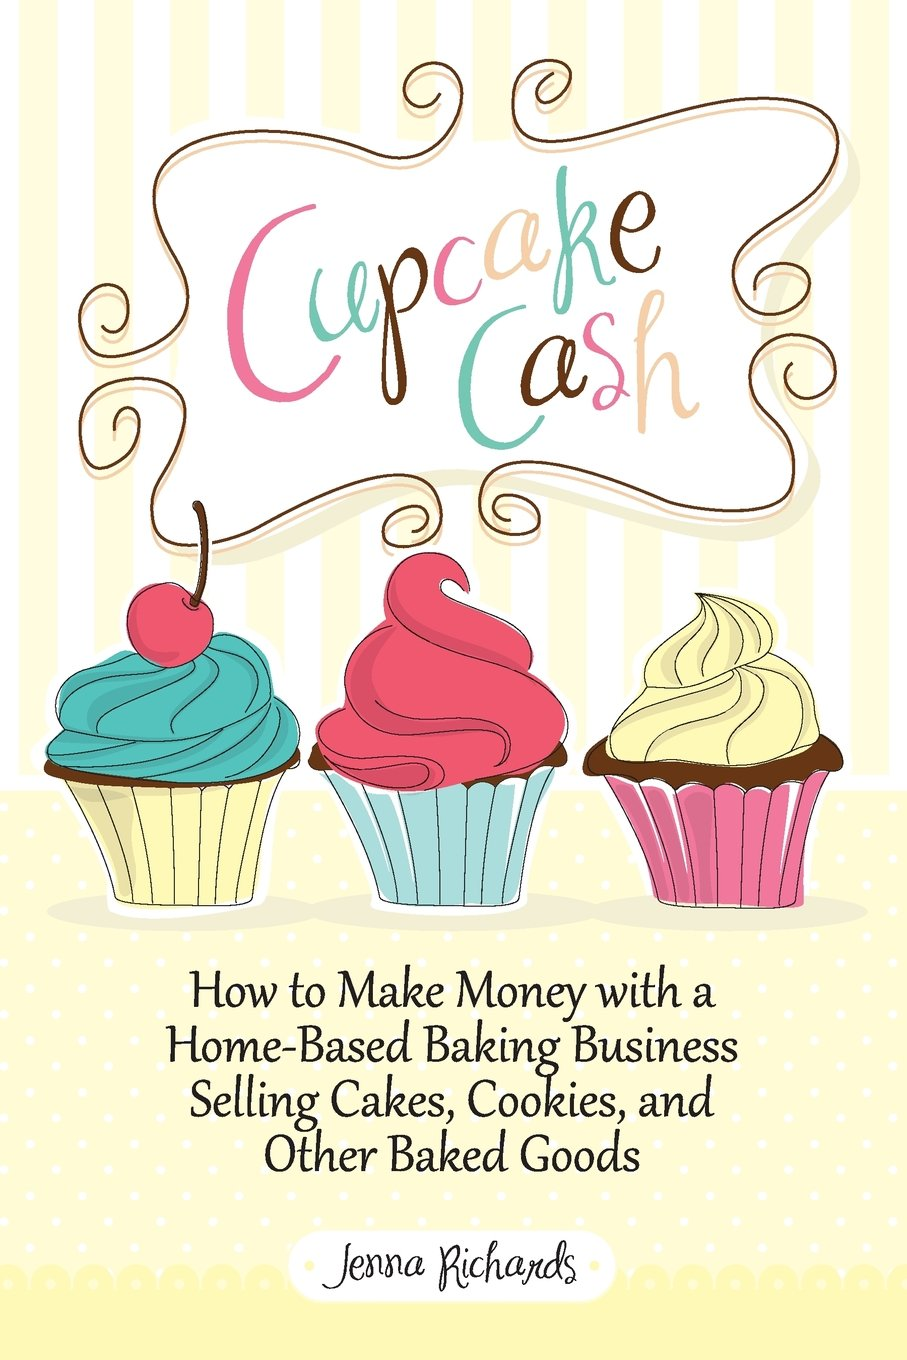 Buy Cupcake Cash - How to Make Money with a Home-Based Baking ...